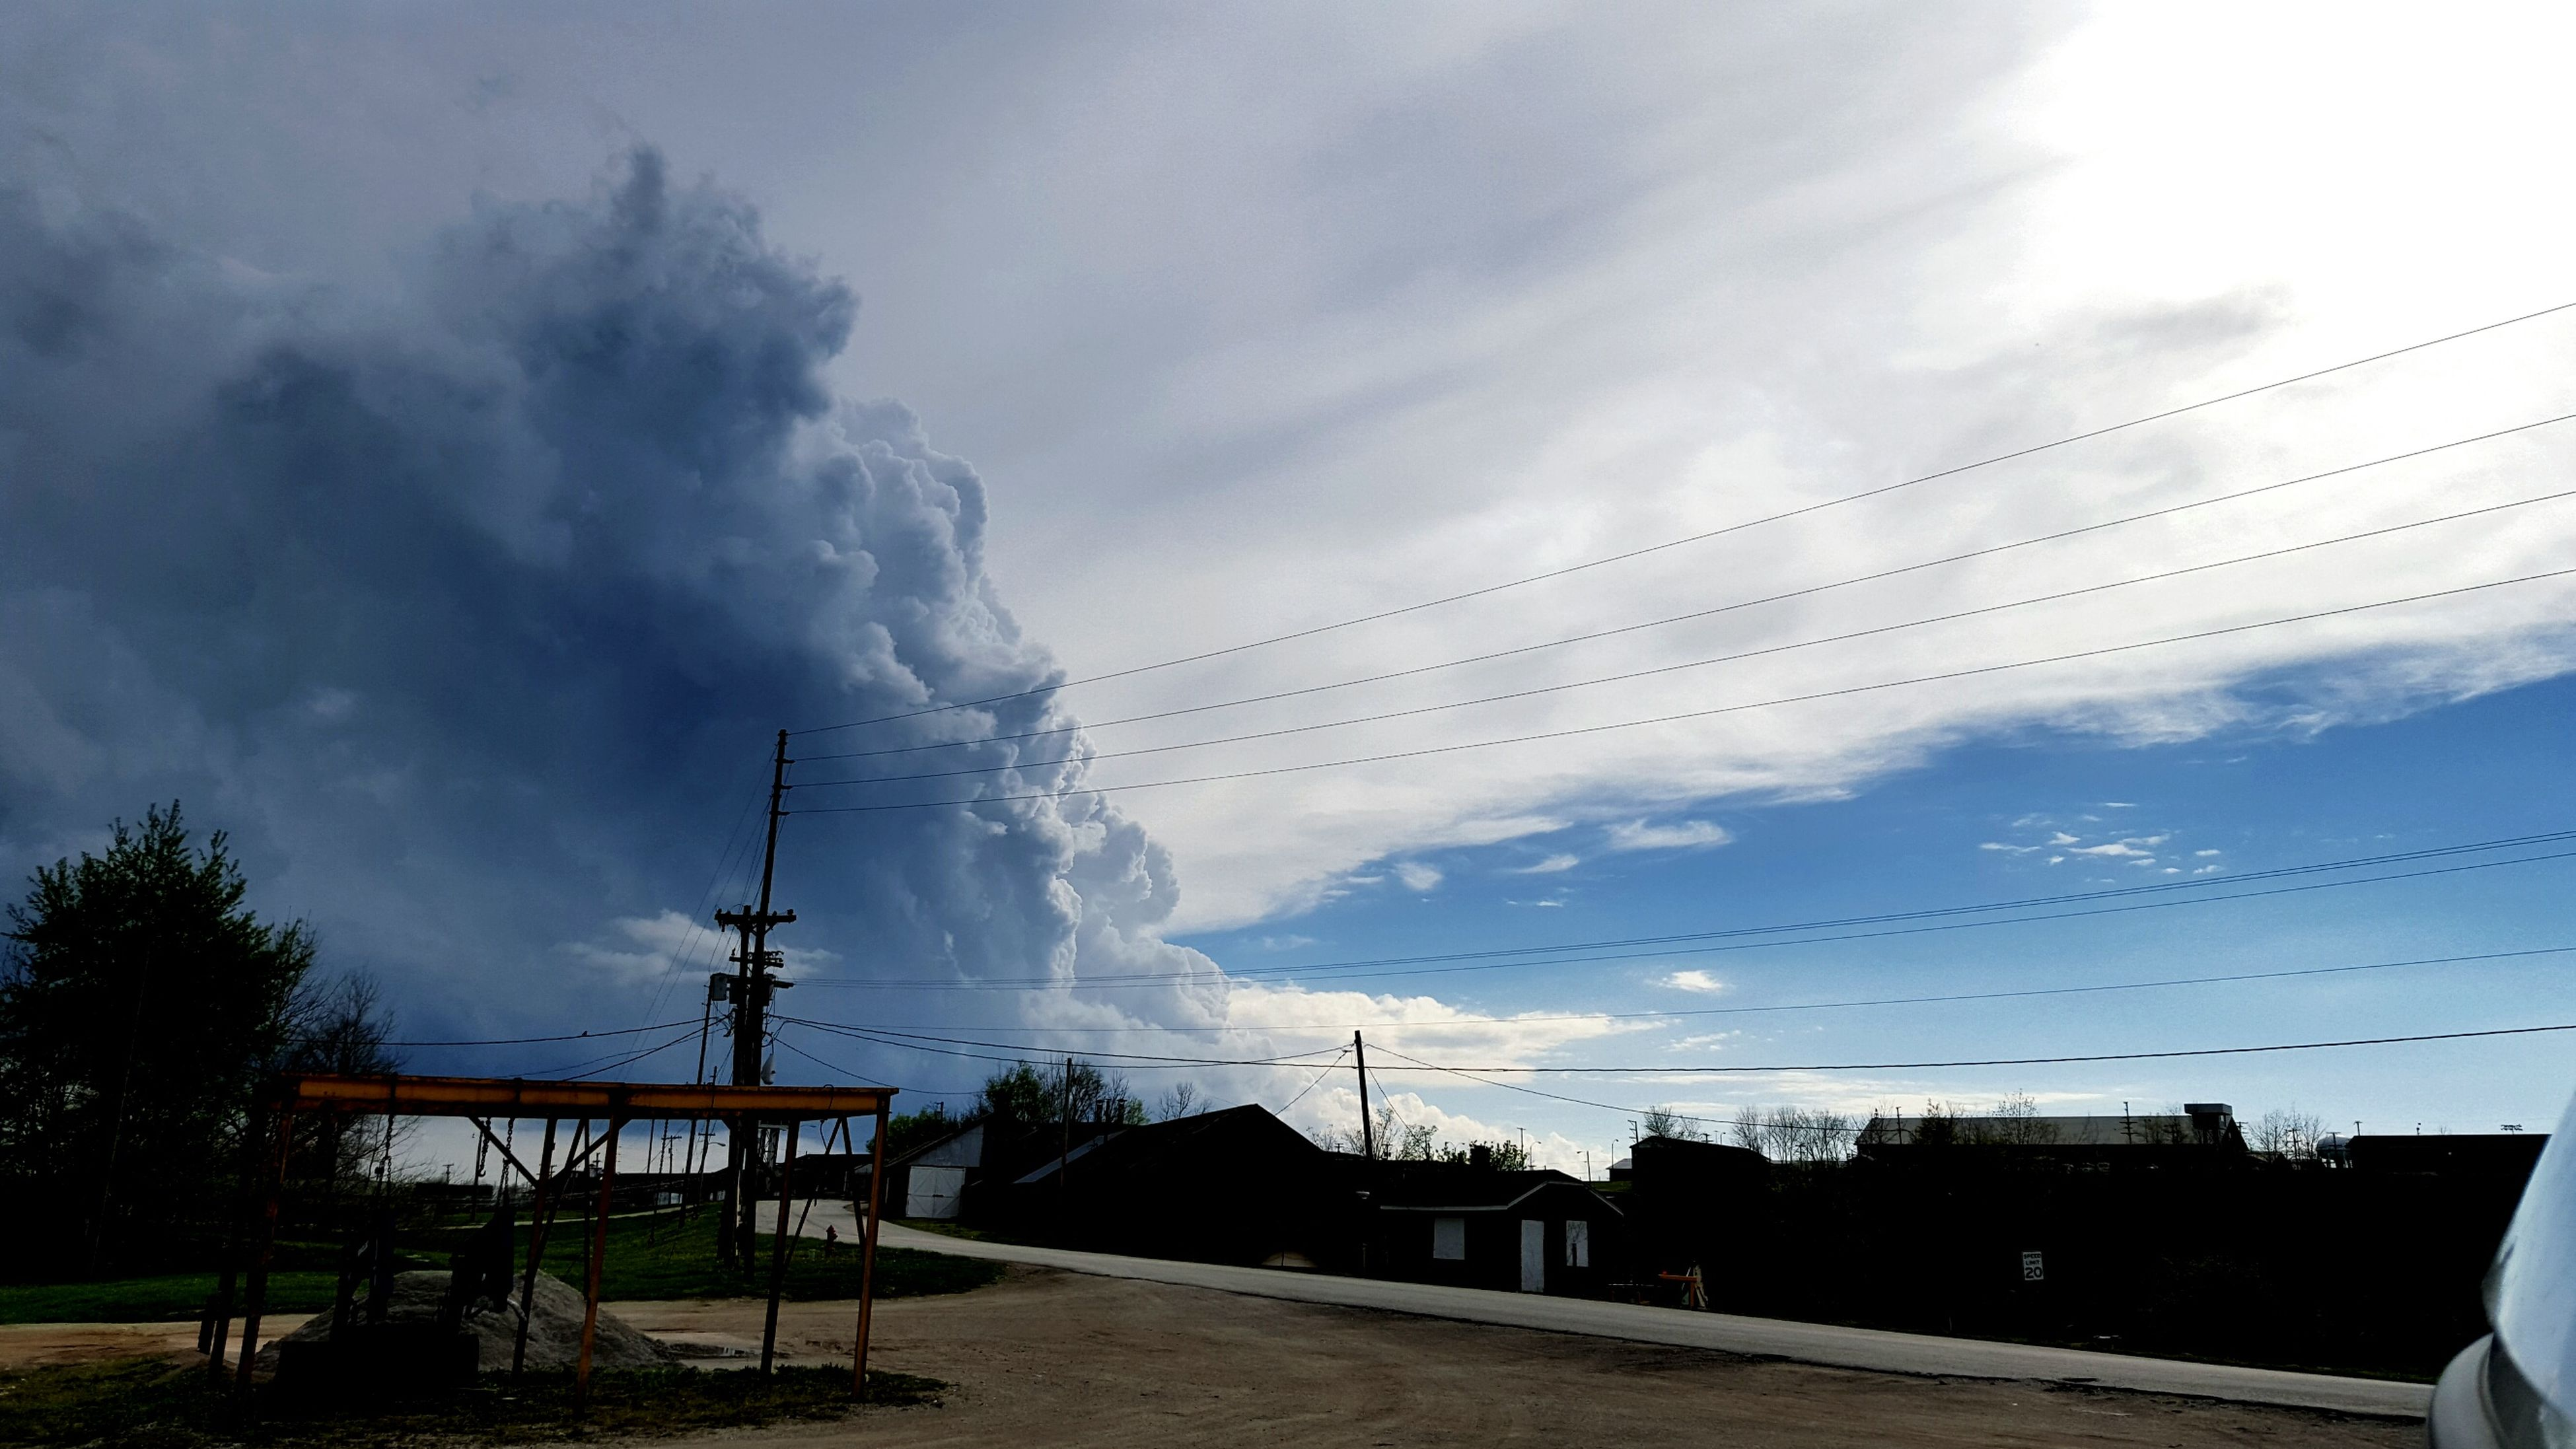 sky, cloud - sky, nature, electricity, no people, outdoors, tree, storm cloud, beauty in nature, power in nature, day